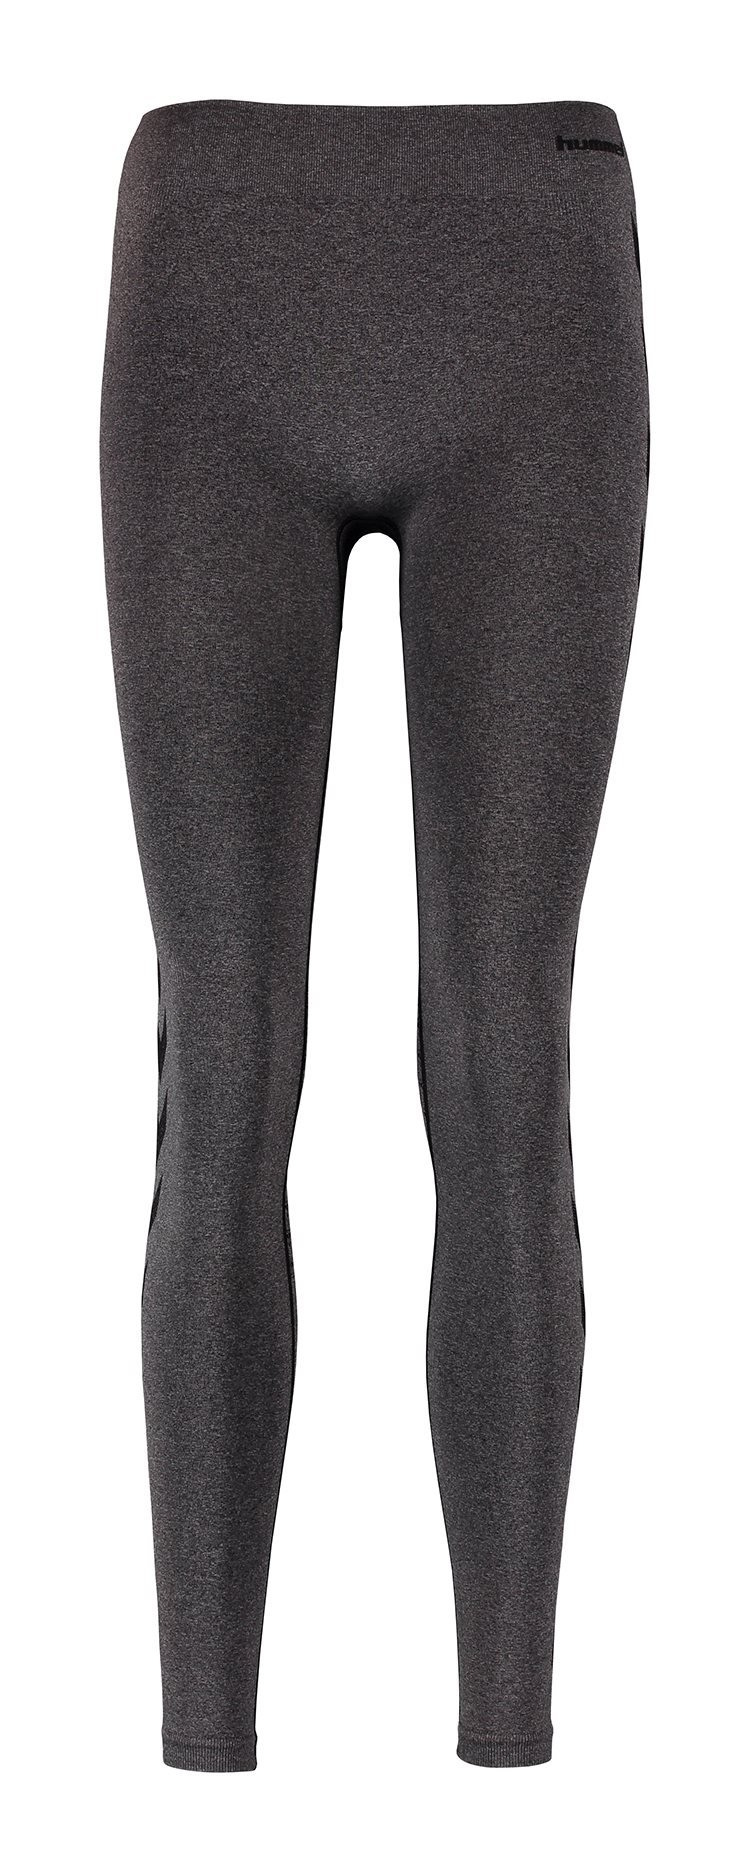 Hummel Classic Bee Seamless Tights Dame